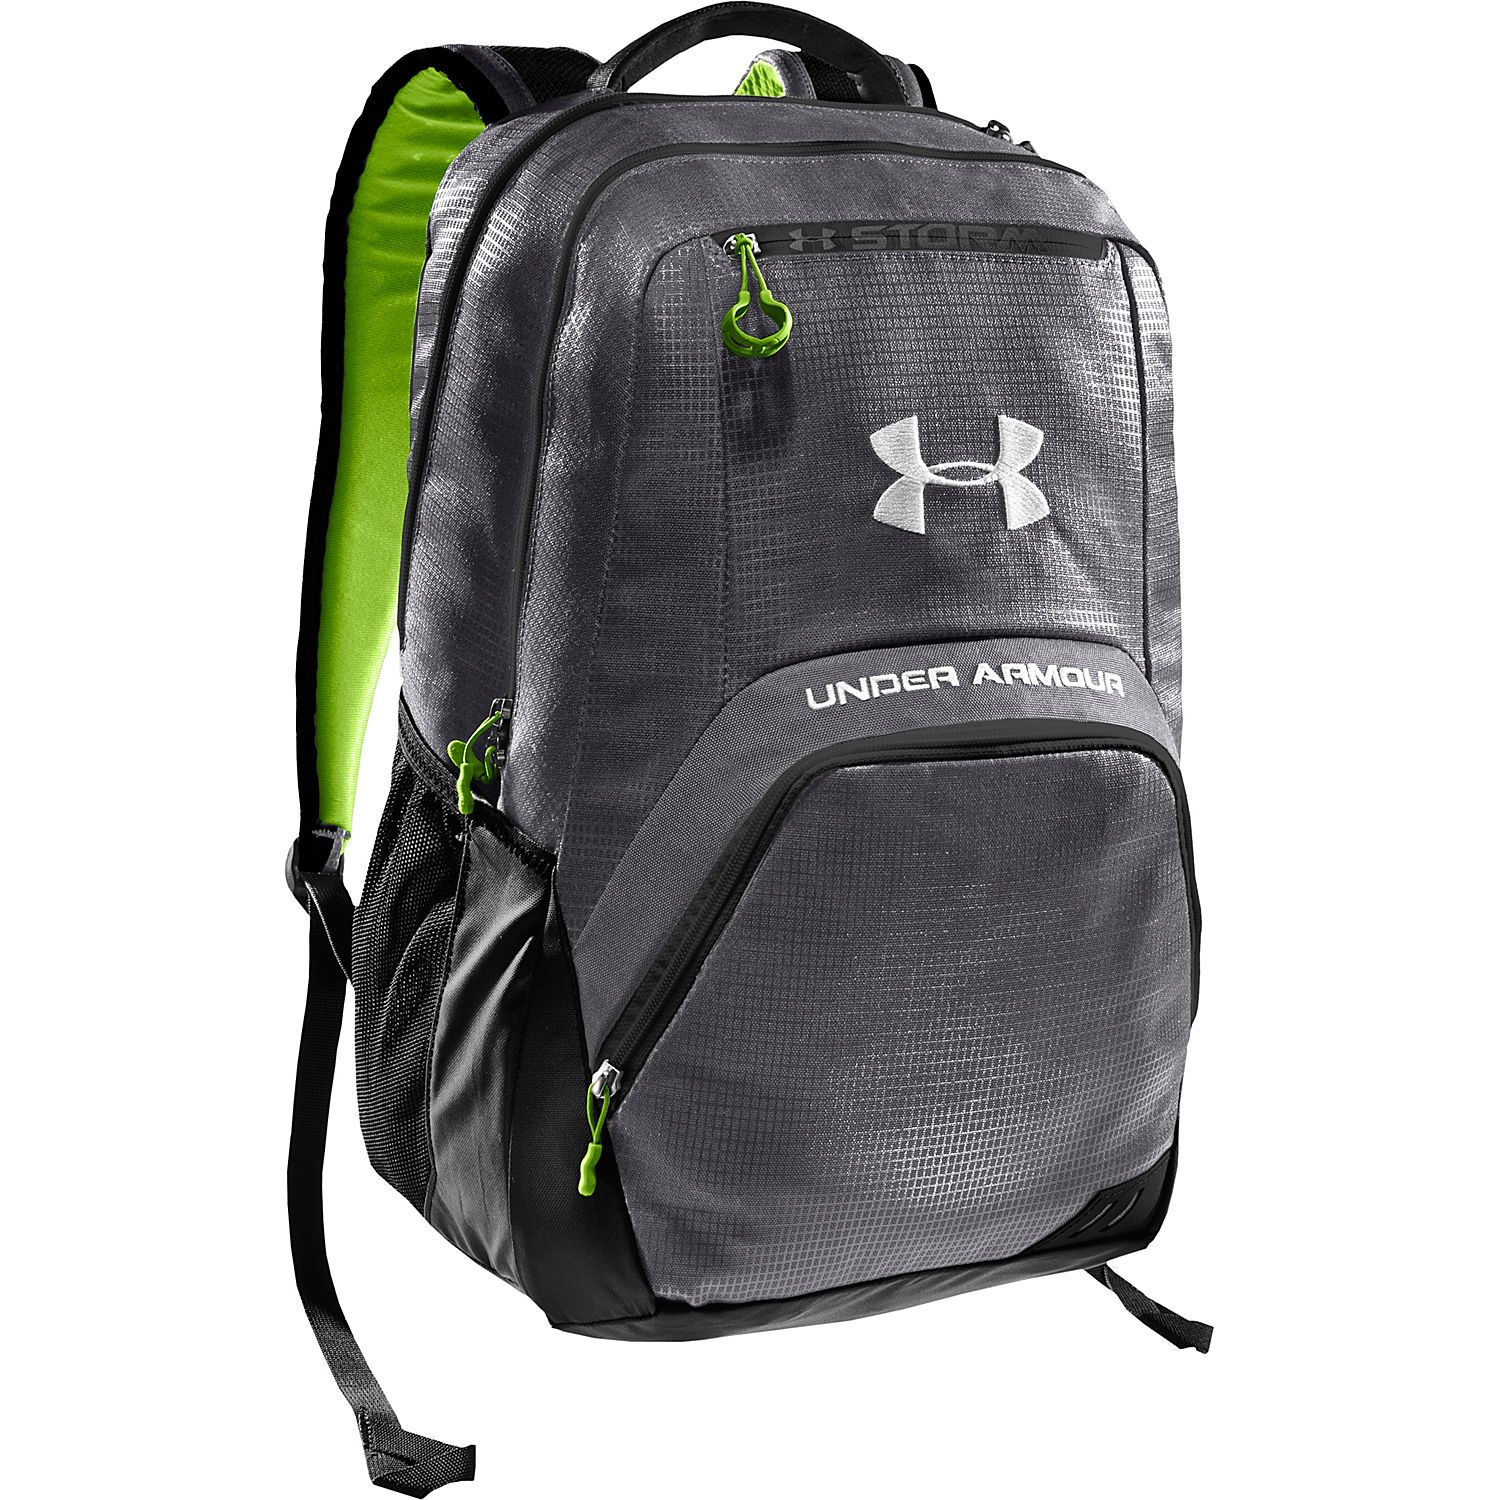 Under Armour Exeter Backpack Ebags Com Under Armour Under Armour Shoes Backpacks